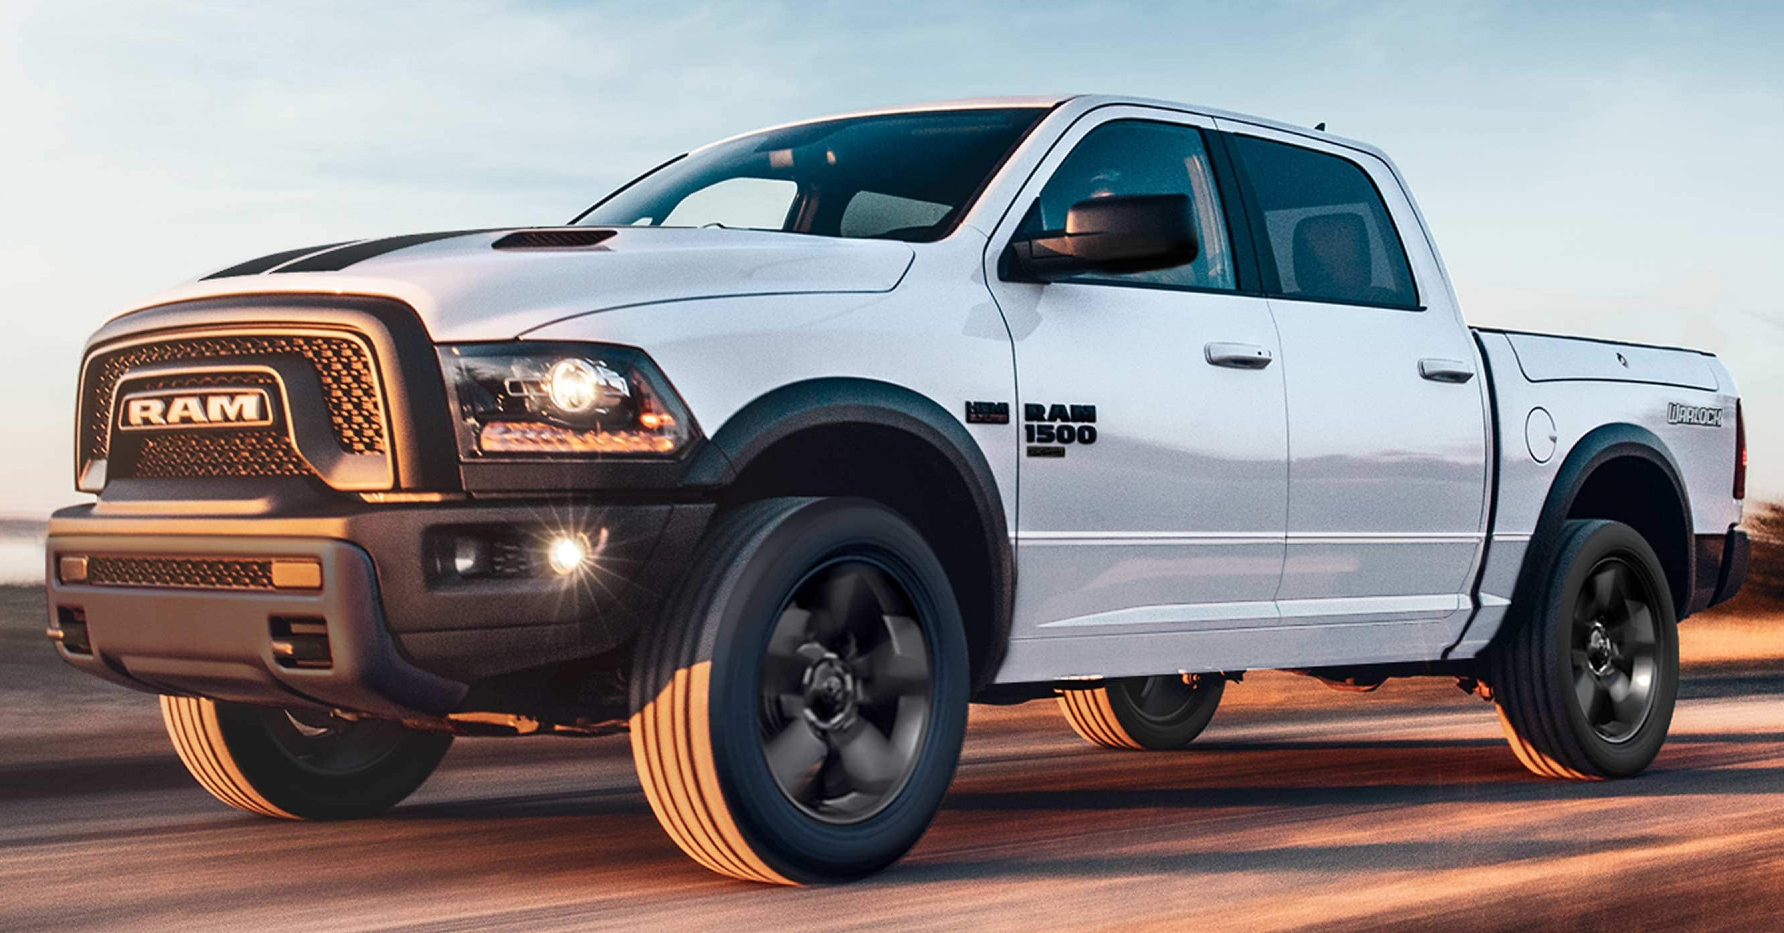 Let the Ram 1500 Lead the Way